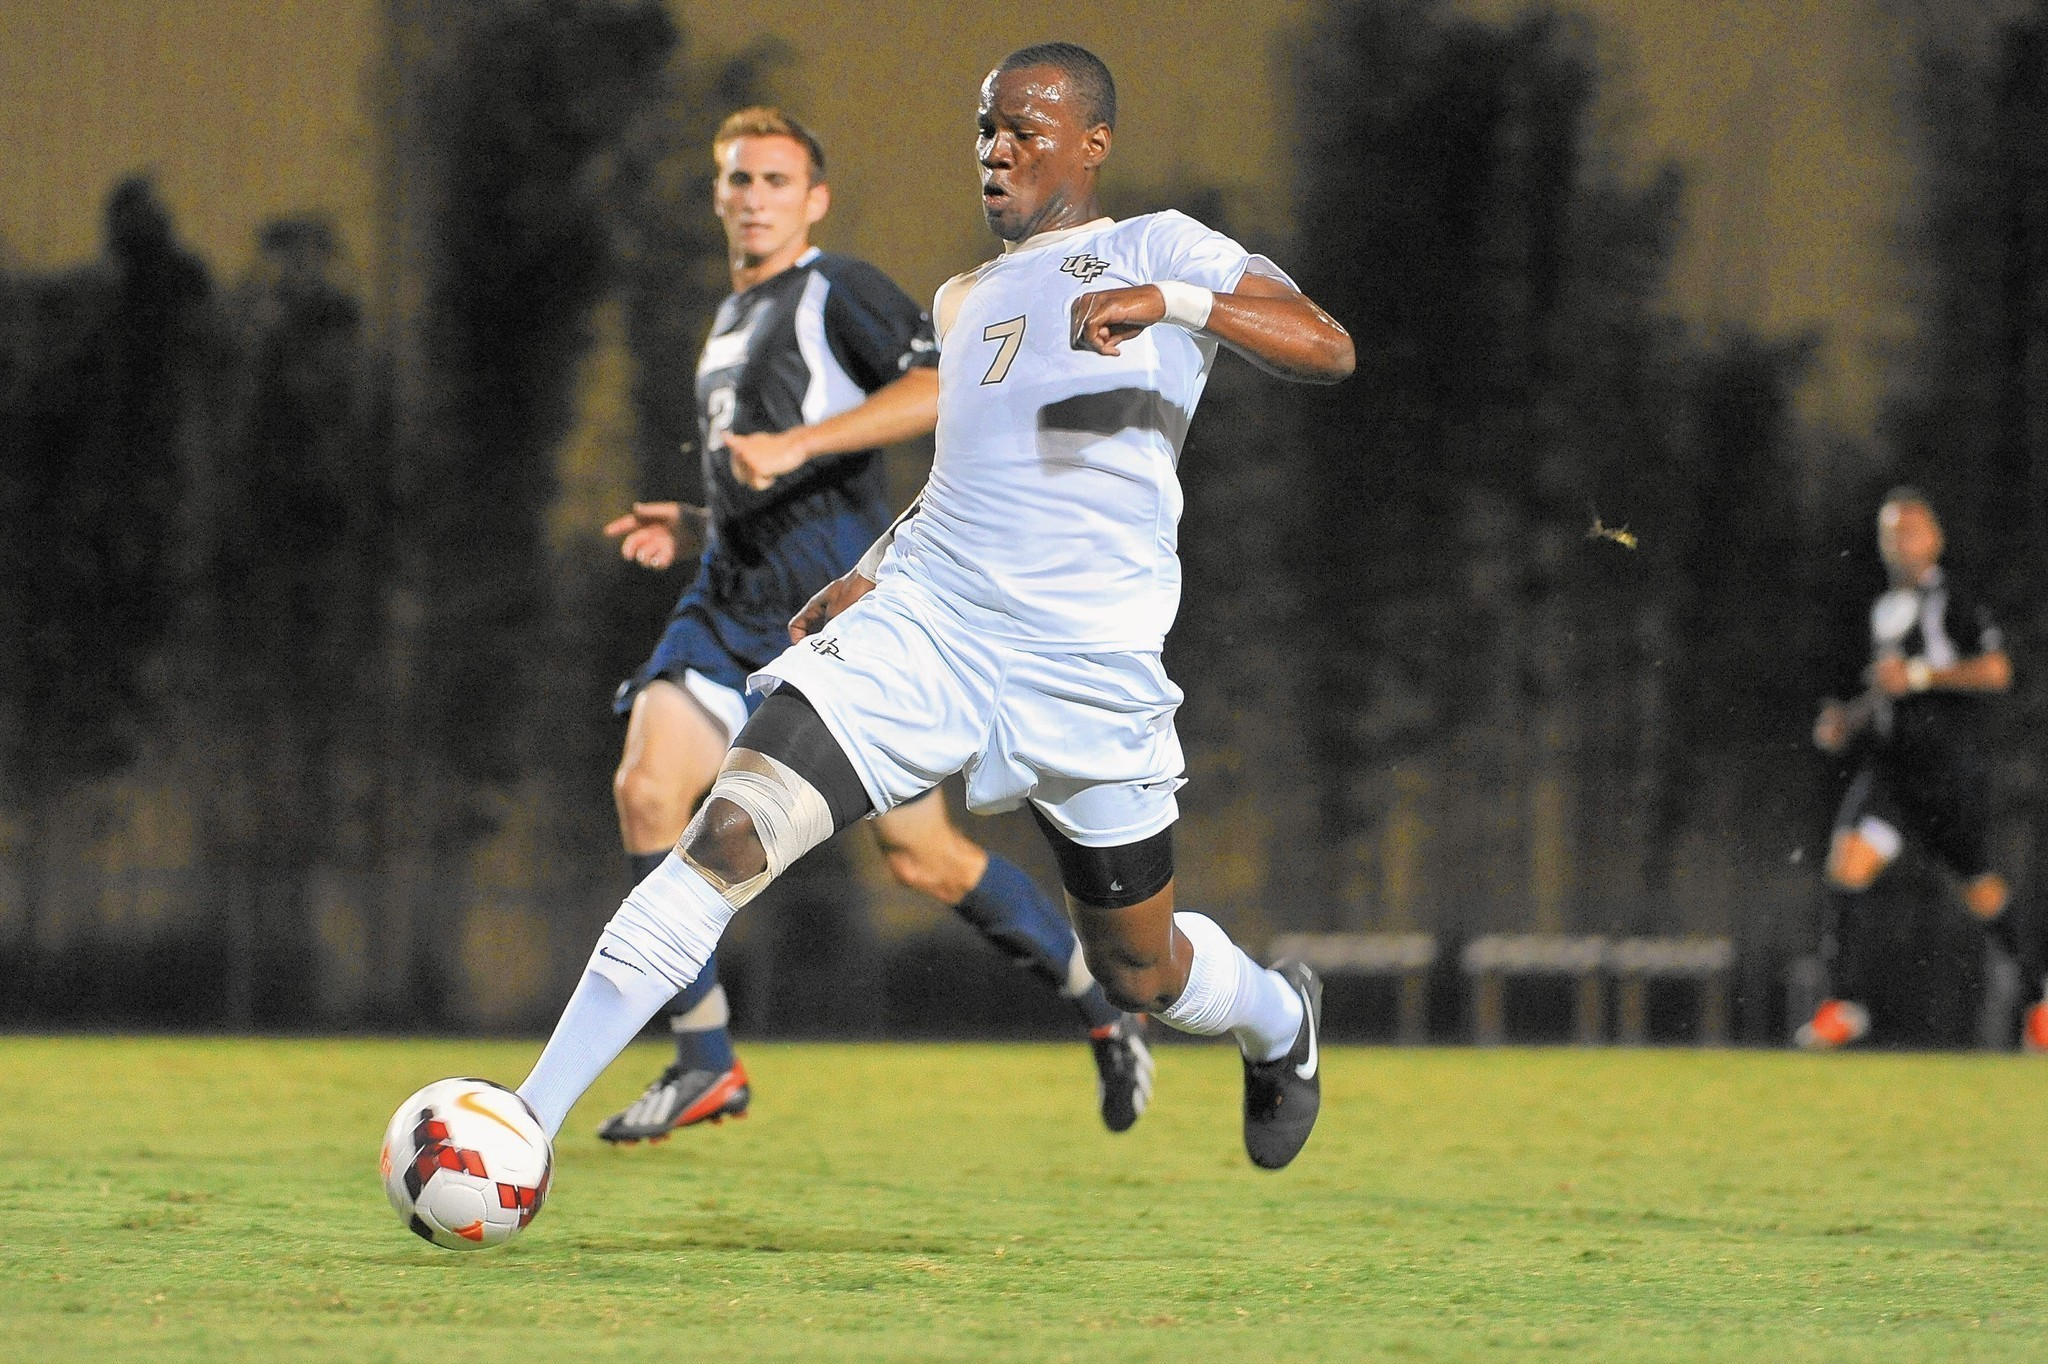 UCF forward Romario Williams selected with No 3 pick of MLS